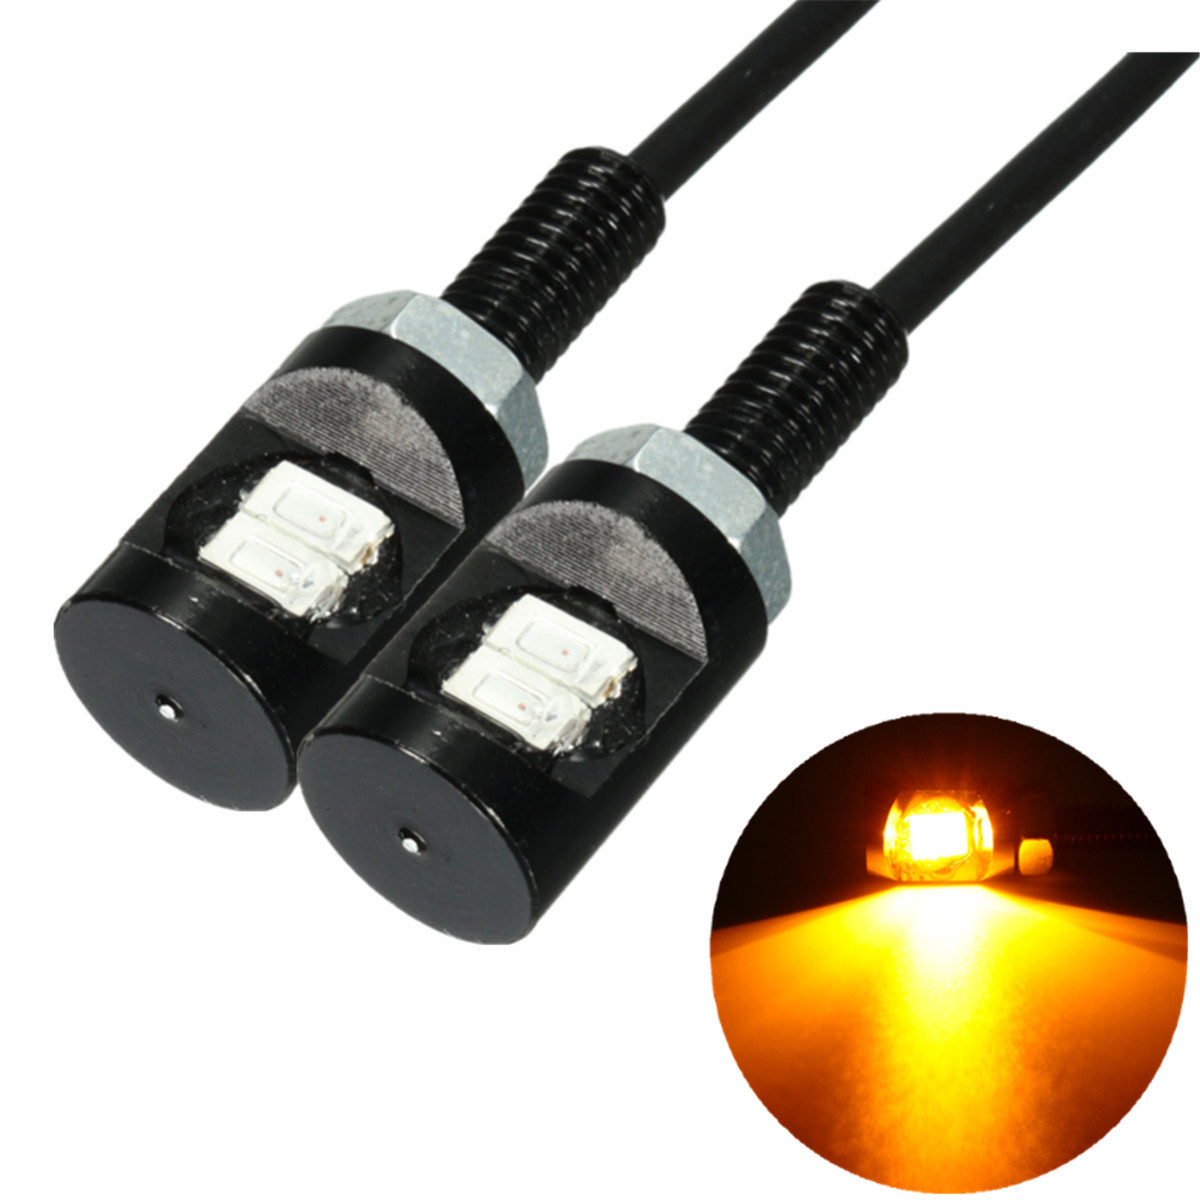 2pcs-motorcycle-number-license-plate-lights-12v-led-5630-smd-auto-tail-front-screw-bolt-bulbs